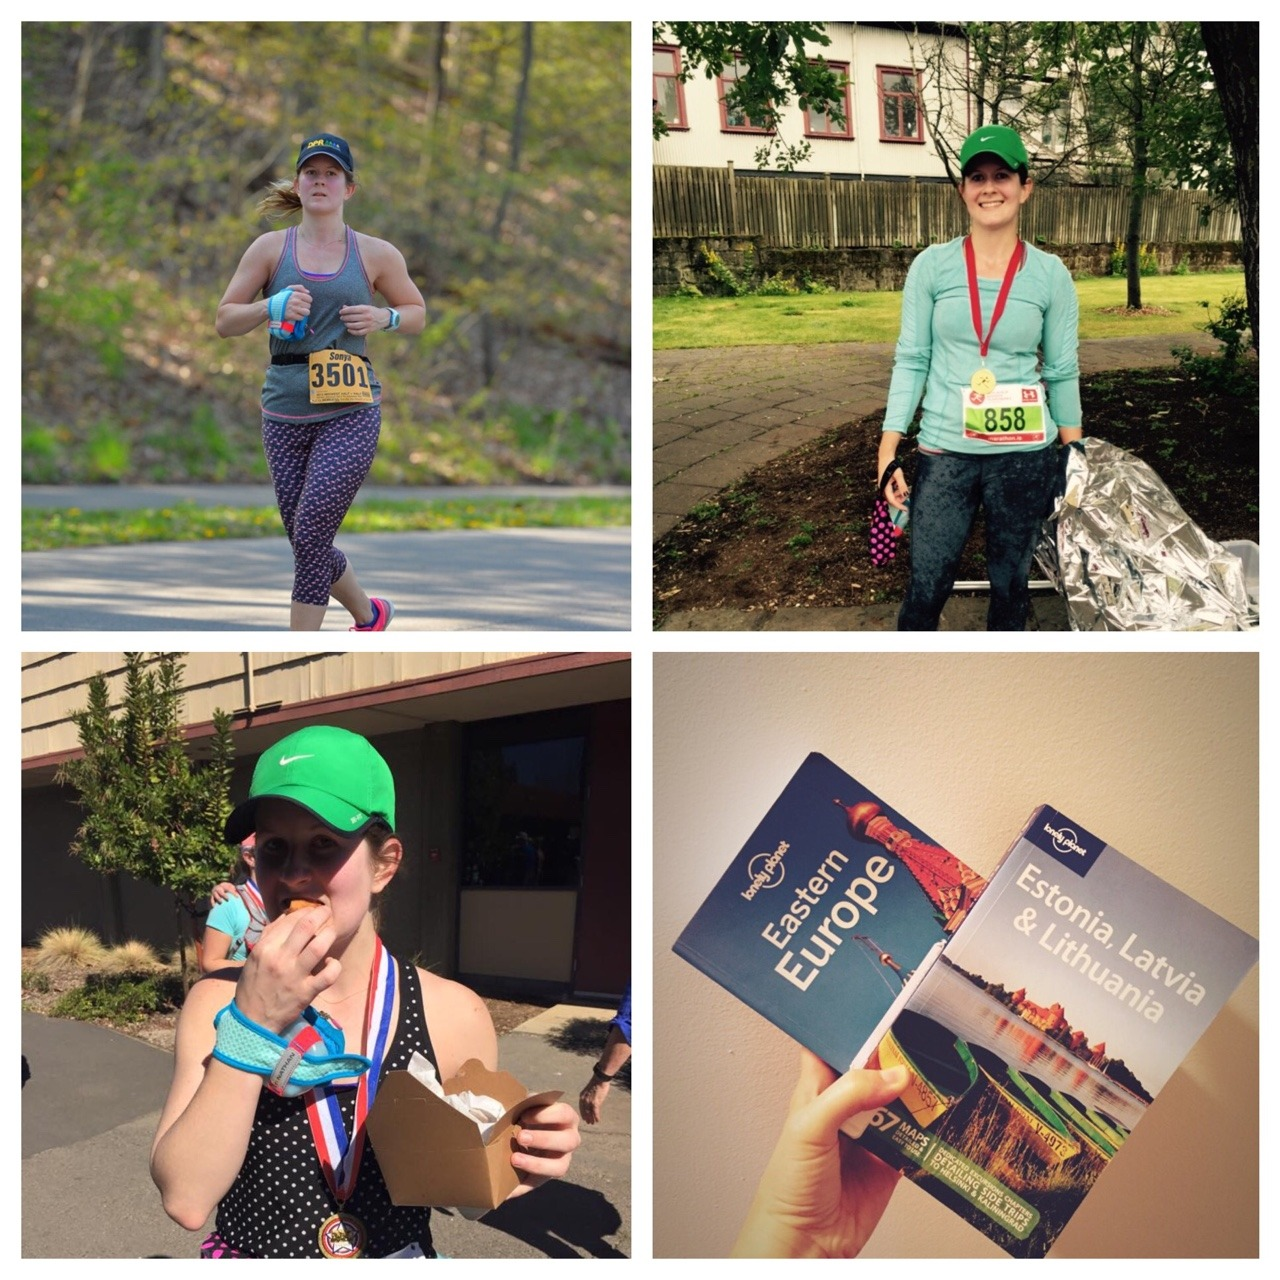 I've mentioned that I am running the Napa Valley Marathon for the second year in a row, on March 6, 2016. I will be in the Bay Area for a little less than a week and I am going with a good friend of mine who is a coworker/friend/race buddy. We do various hobbies together, we like good food and are beer snobs and she is a fantastic runner and qualified for the Boston Marathon in 2016 (twice this year, if we want to split hairs) and we talk nearly every day. I am very excited to be traveling to Napa with her - and I've convinced her that we're conquering our first race in South America together someday in the not so distant future. I am also going to see her at Thanksgiving in Omaha where will be running a trail half-marathon together, naturally. We travel well together and I really don't know anyone else, other than my sister, that I could possibly coerce into run a destination race with me.  But I've rambled on enough, I plan on book-ending my summer in Chicago with trips to Eastern Europe. I am planning a trip to Croatia, Montenegro, and where ever else the spirit moves us, in August. I am very much looking forward to this trip because my travel buddy for this one went to Napa with me last year and we travel well together and I am pretty sure her husband is joining us too. I can't wait for relaxing, exploring, eating, and drinking with these two!  In May, I'm headed to the Baltics, most likely on my own for the entire trip. I registered for what is perhaps the cheapest ($30.54!) marathon in the world in Riga, Latvia. My sister might run the half or attempt her first full and come for the Riga portion of the trip, but she's a teacher so taking off in May is more difficult for her. I'm happy either way, as solo travel is now very comfortable for me. The Balkan nations have fascinated me for awhile and I'm very excited to plan trips to Eastern Europe exclusively for next summer.  Currently, I can't decide upon the full details of this trip at the moment, but I will ha